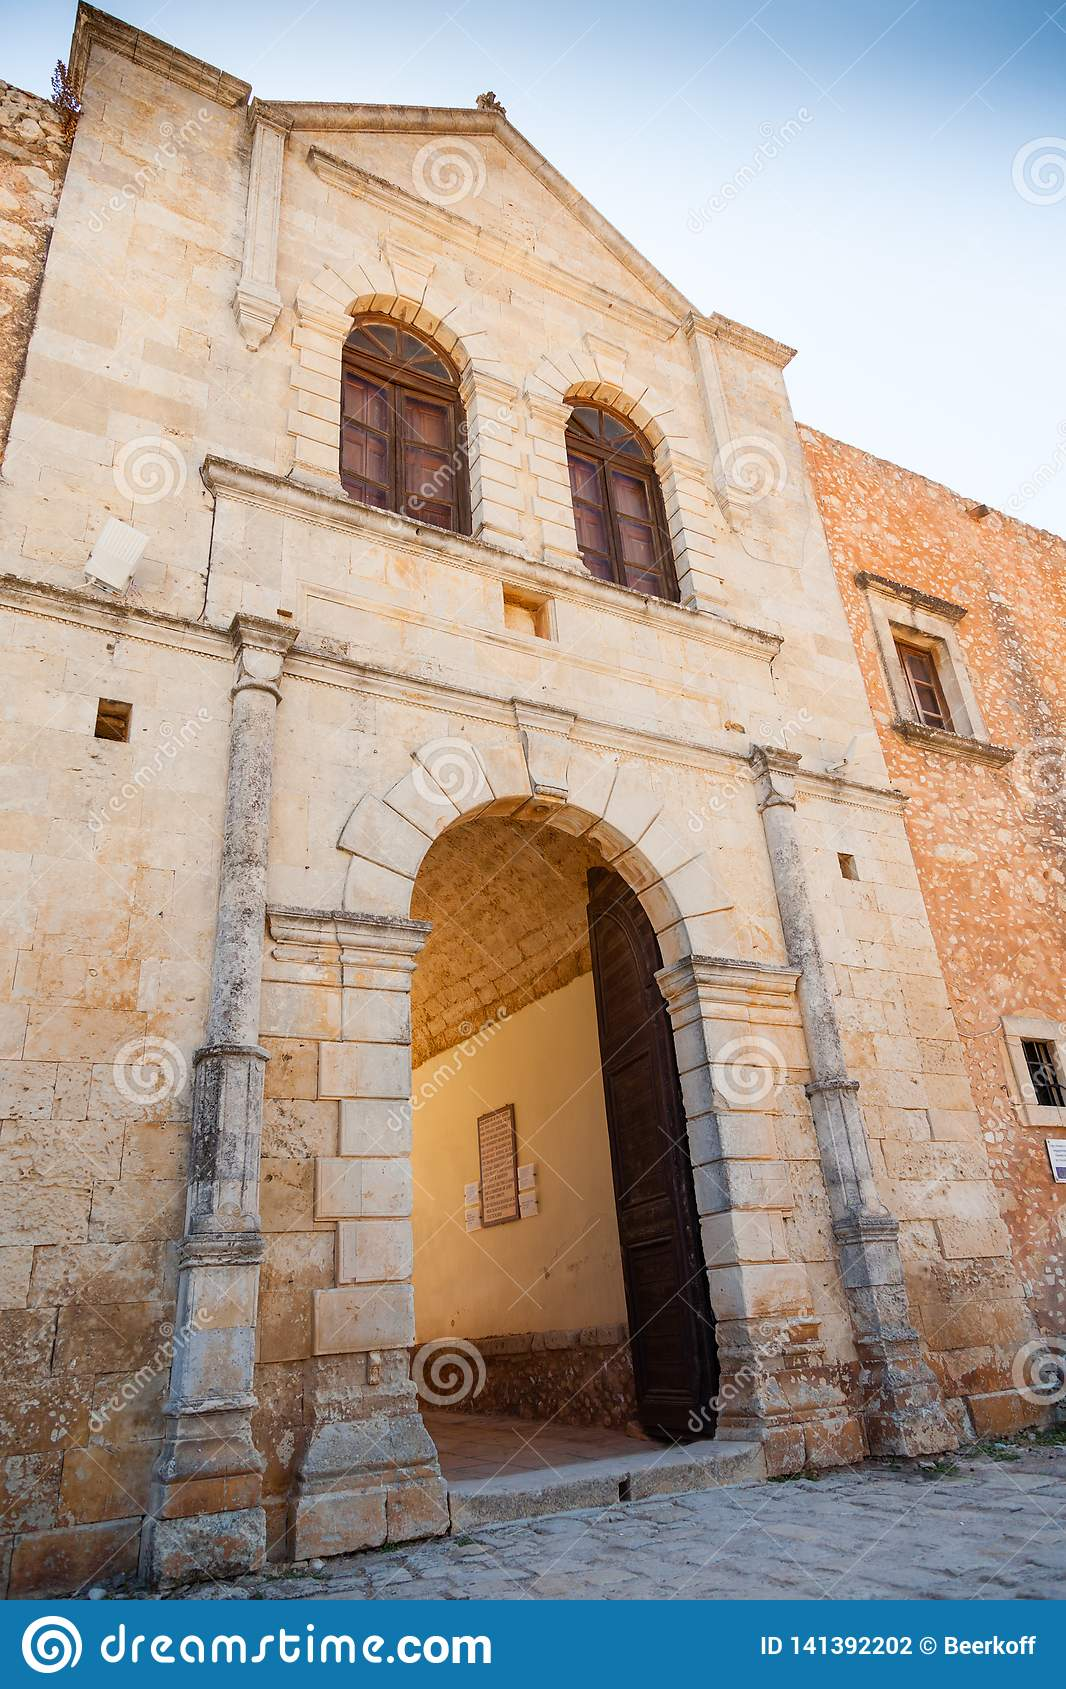 Arches of old monastery